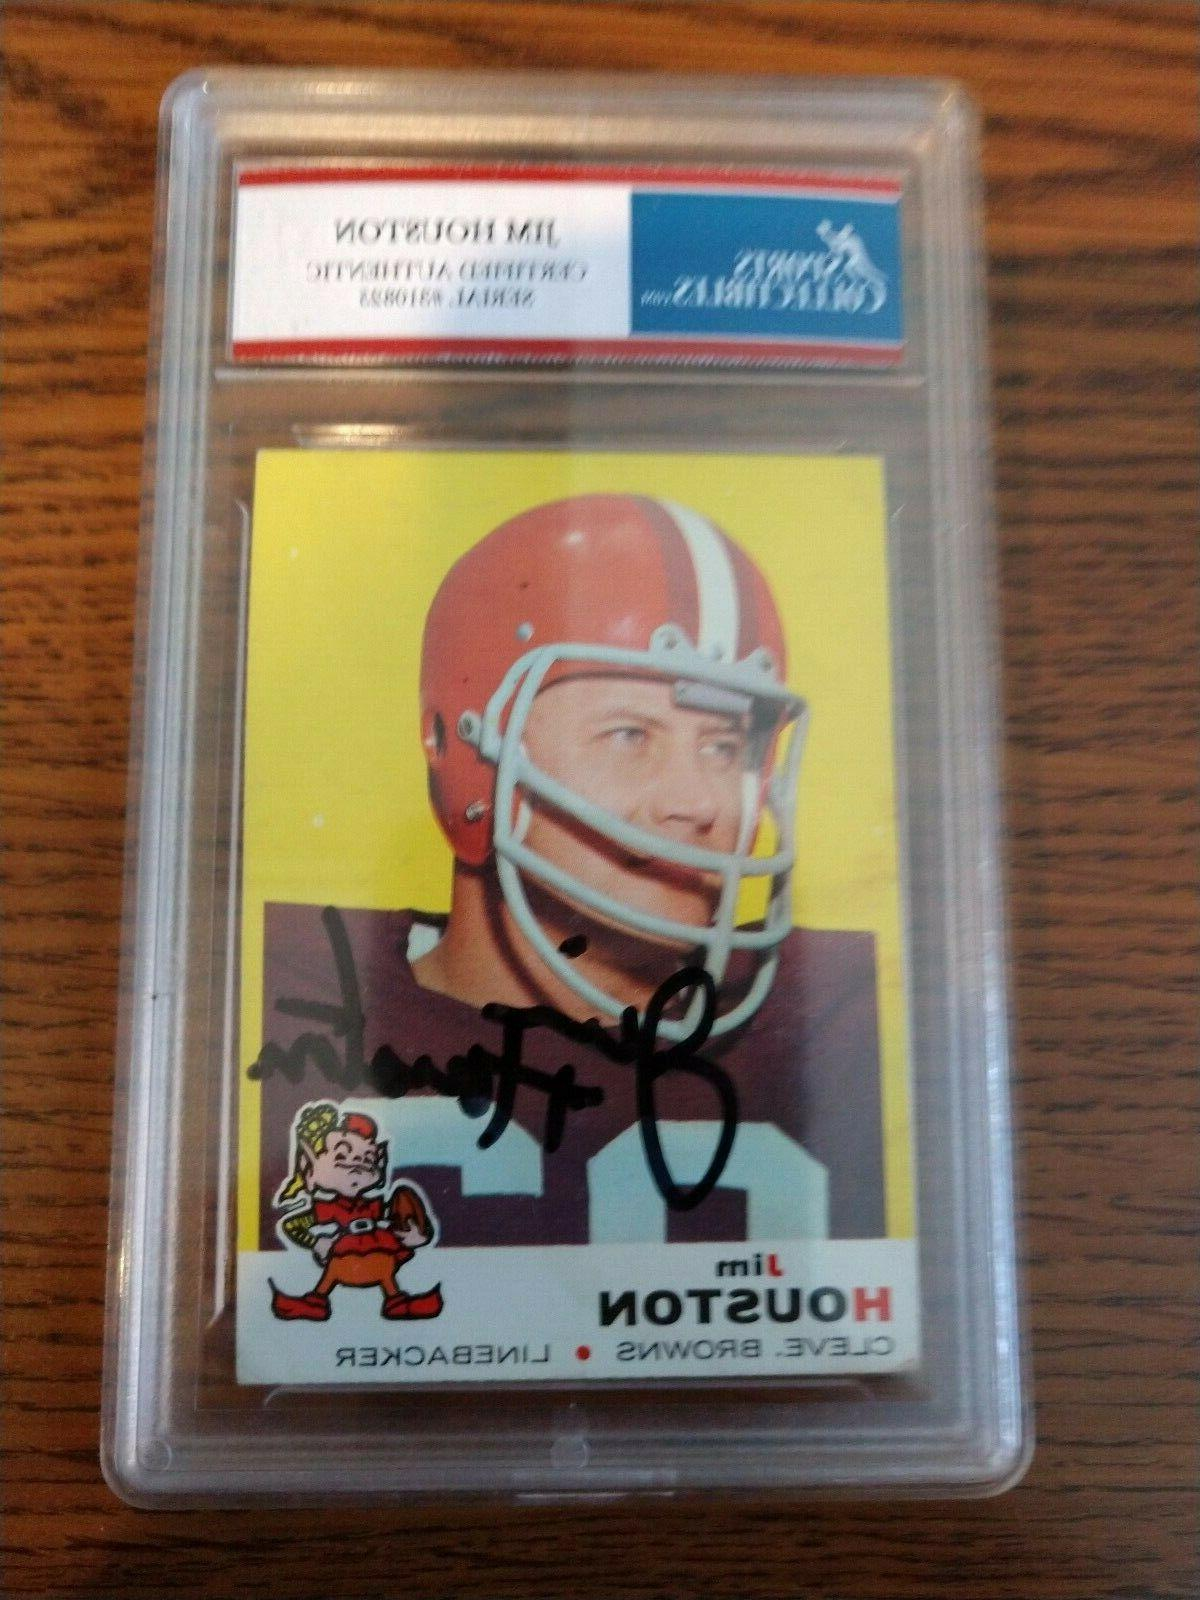 jim houston cleveland browns 1969 topps autographed